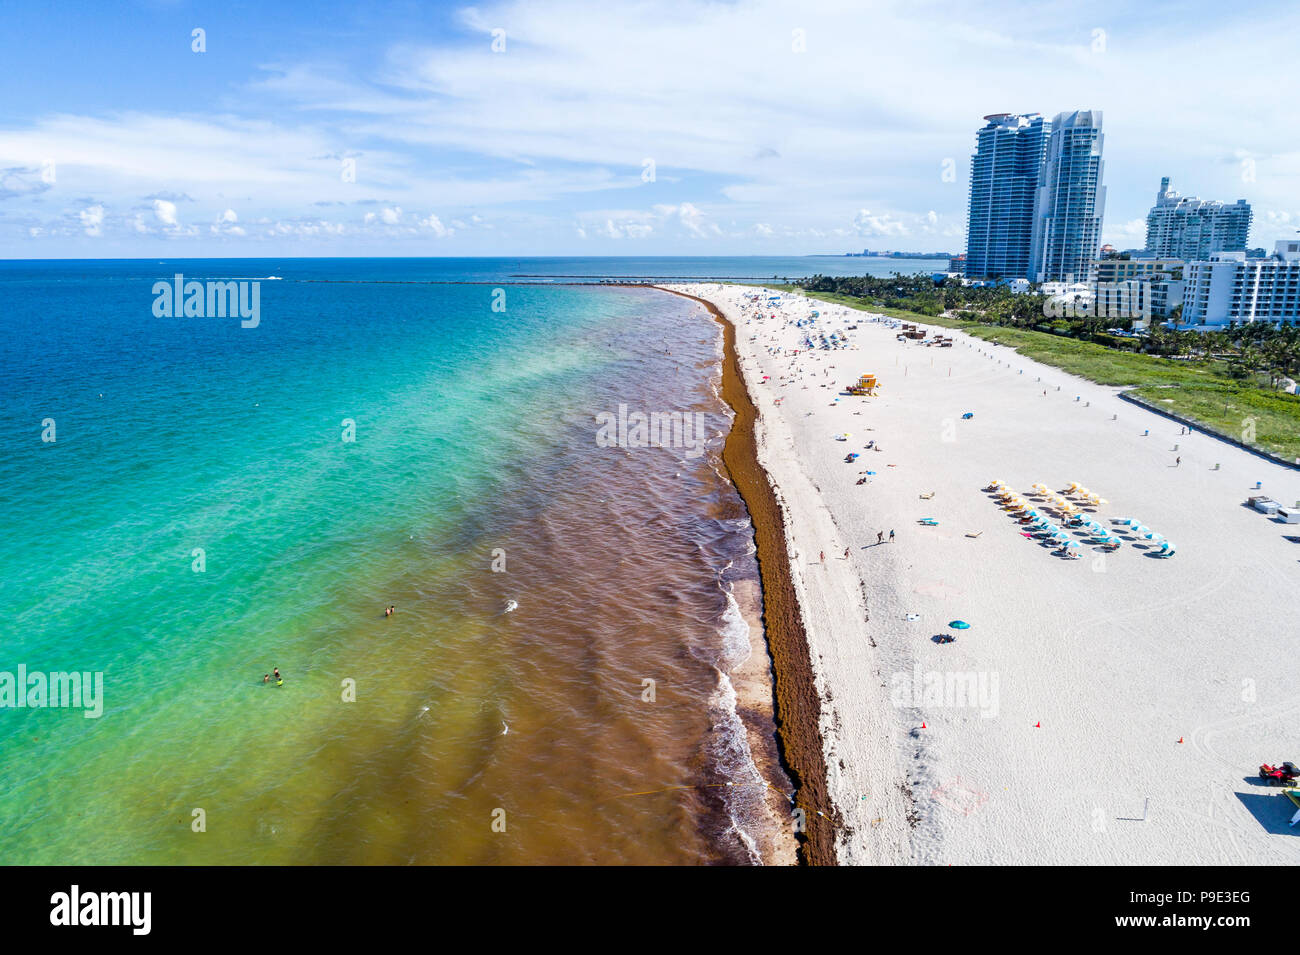 Miami Beach Florida Atlantic Ocean shore shoreline seaweed